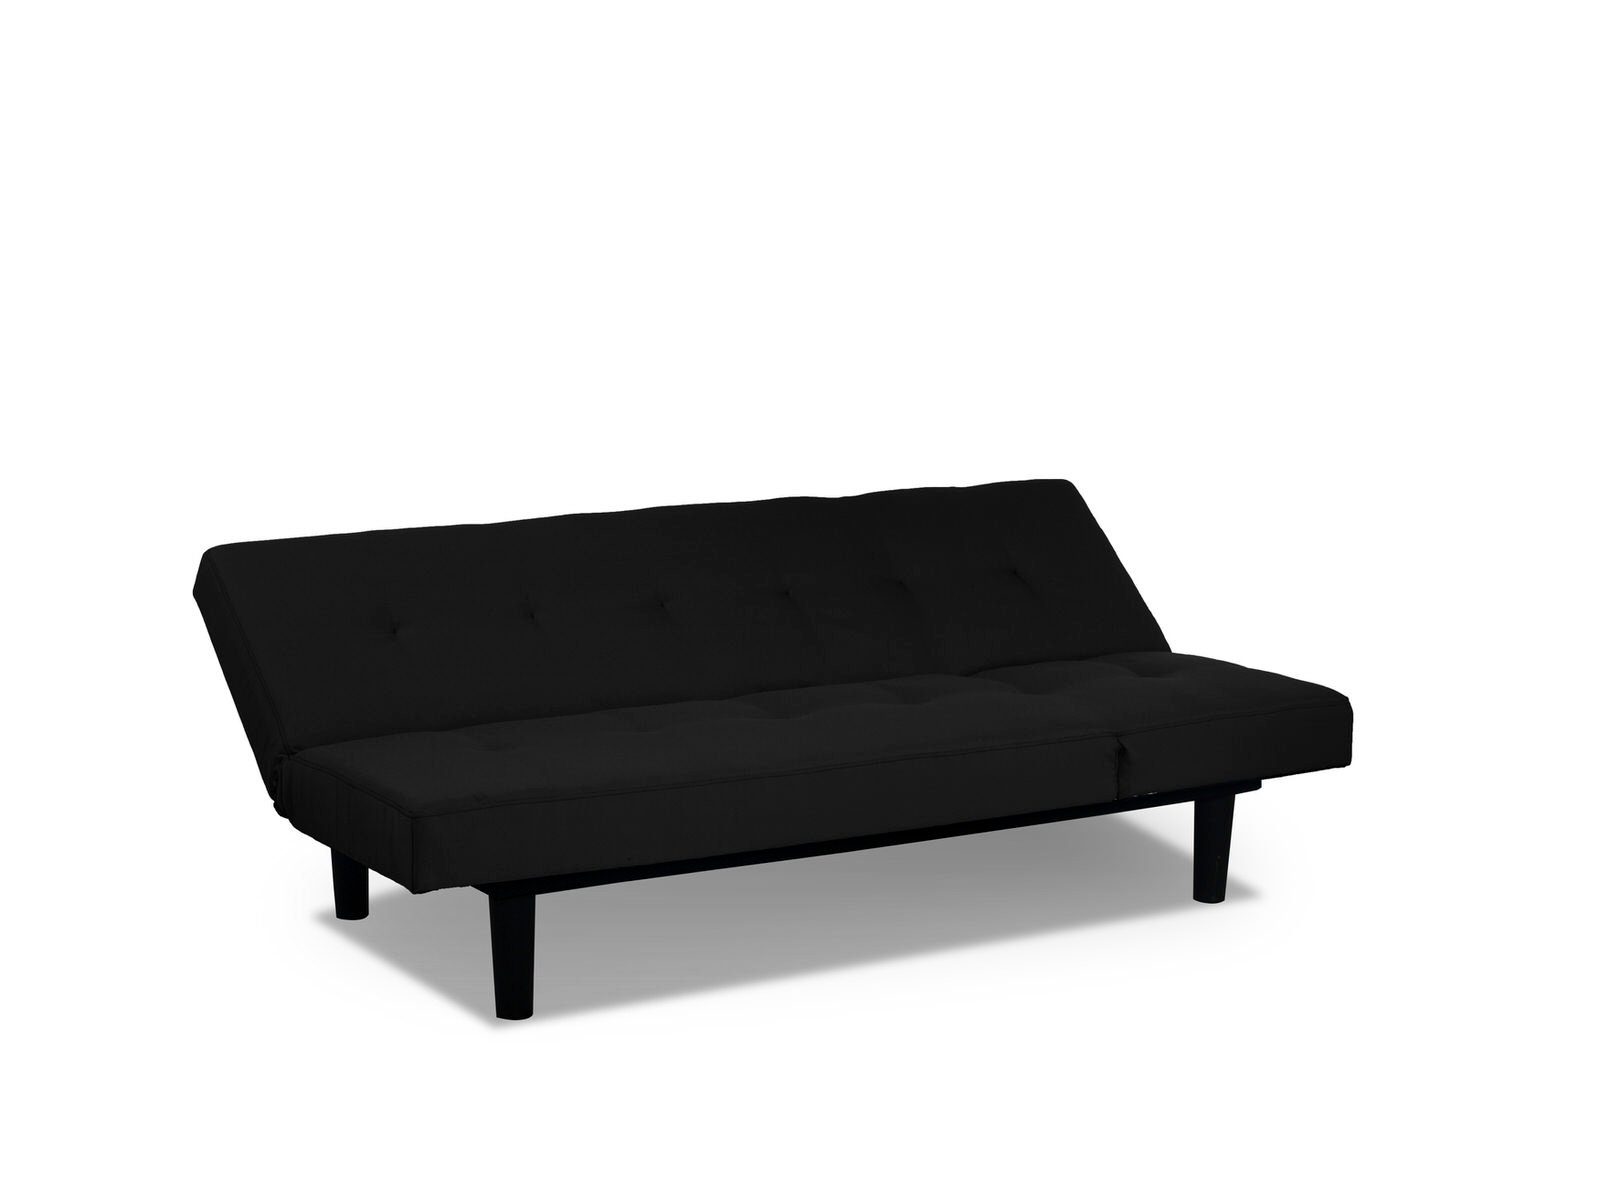 Mini Lounger Convertible Sofa Bed Black By Serta Lifestyle